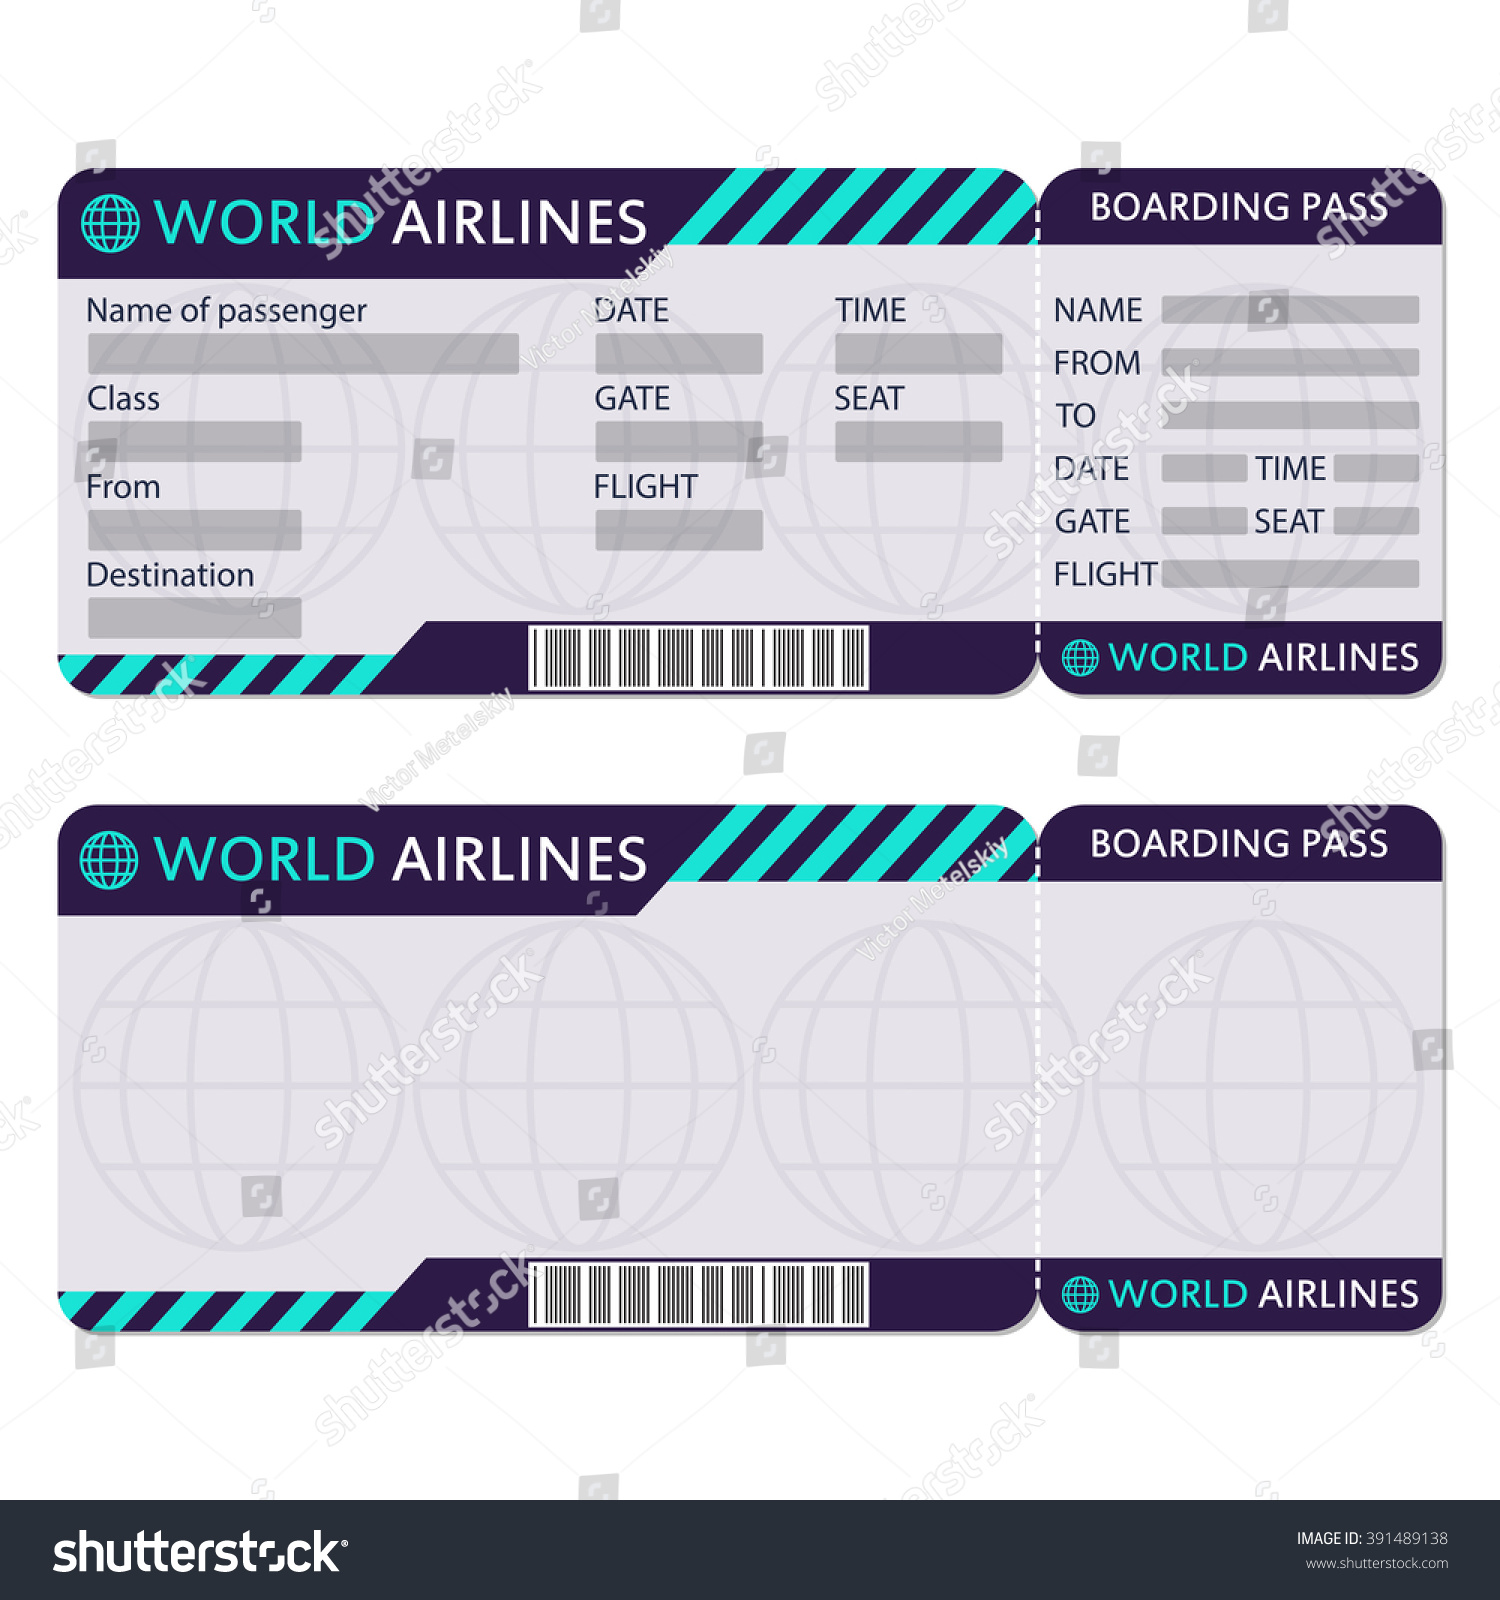 free printable boarding pass template. browsing photoshop psd files on ...